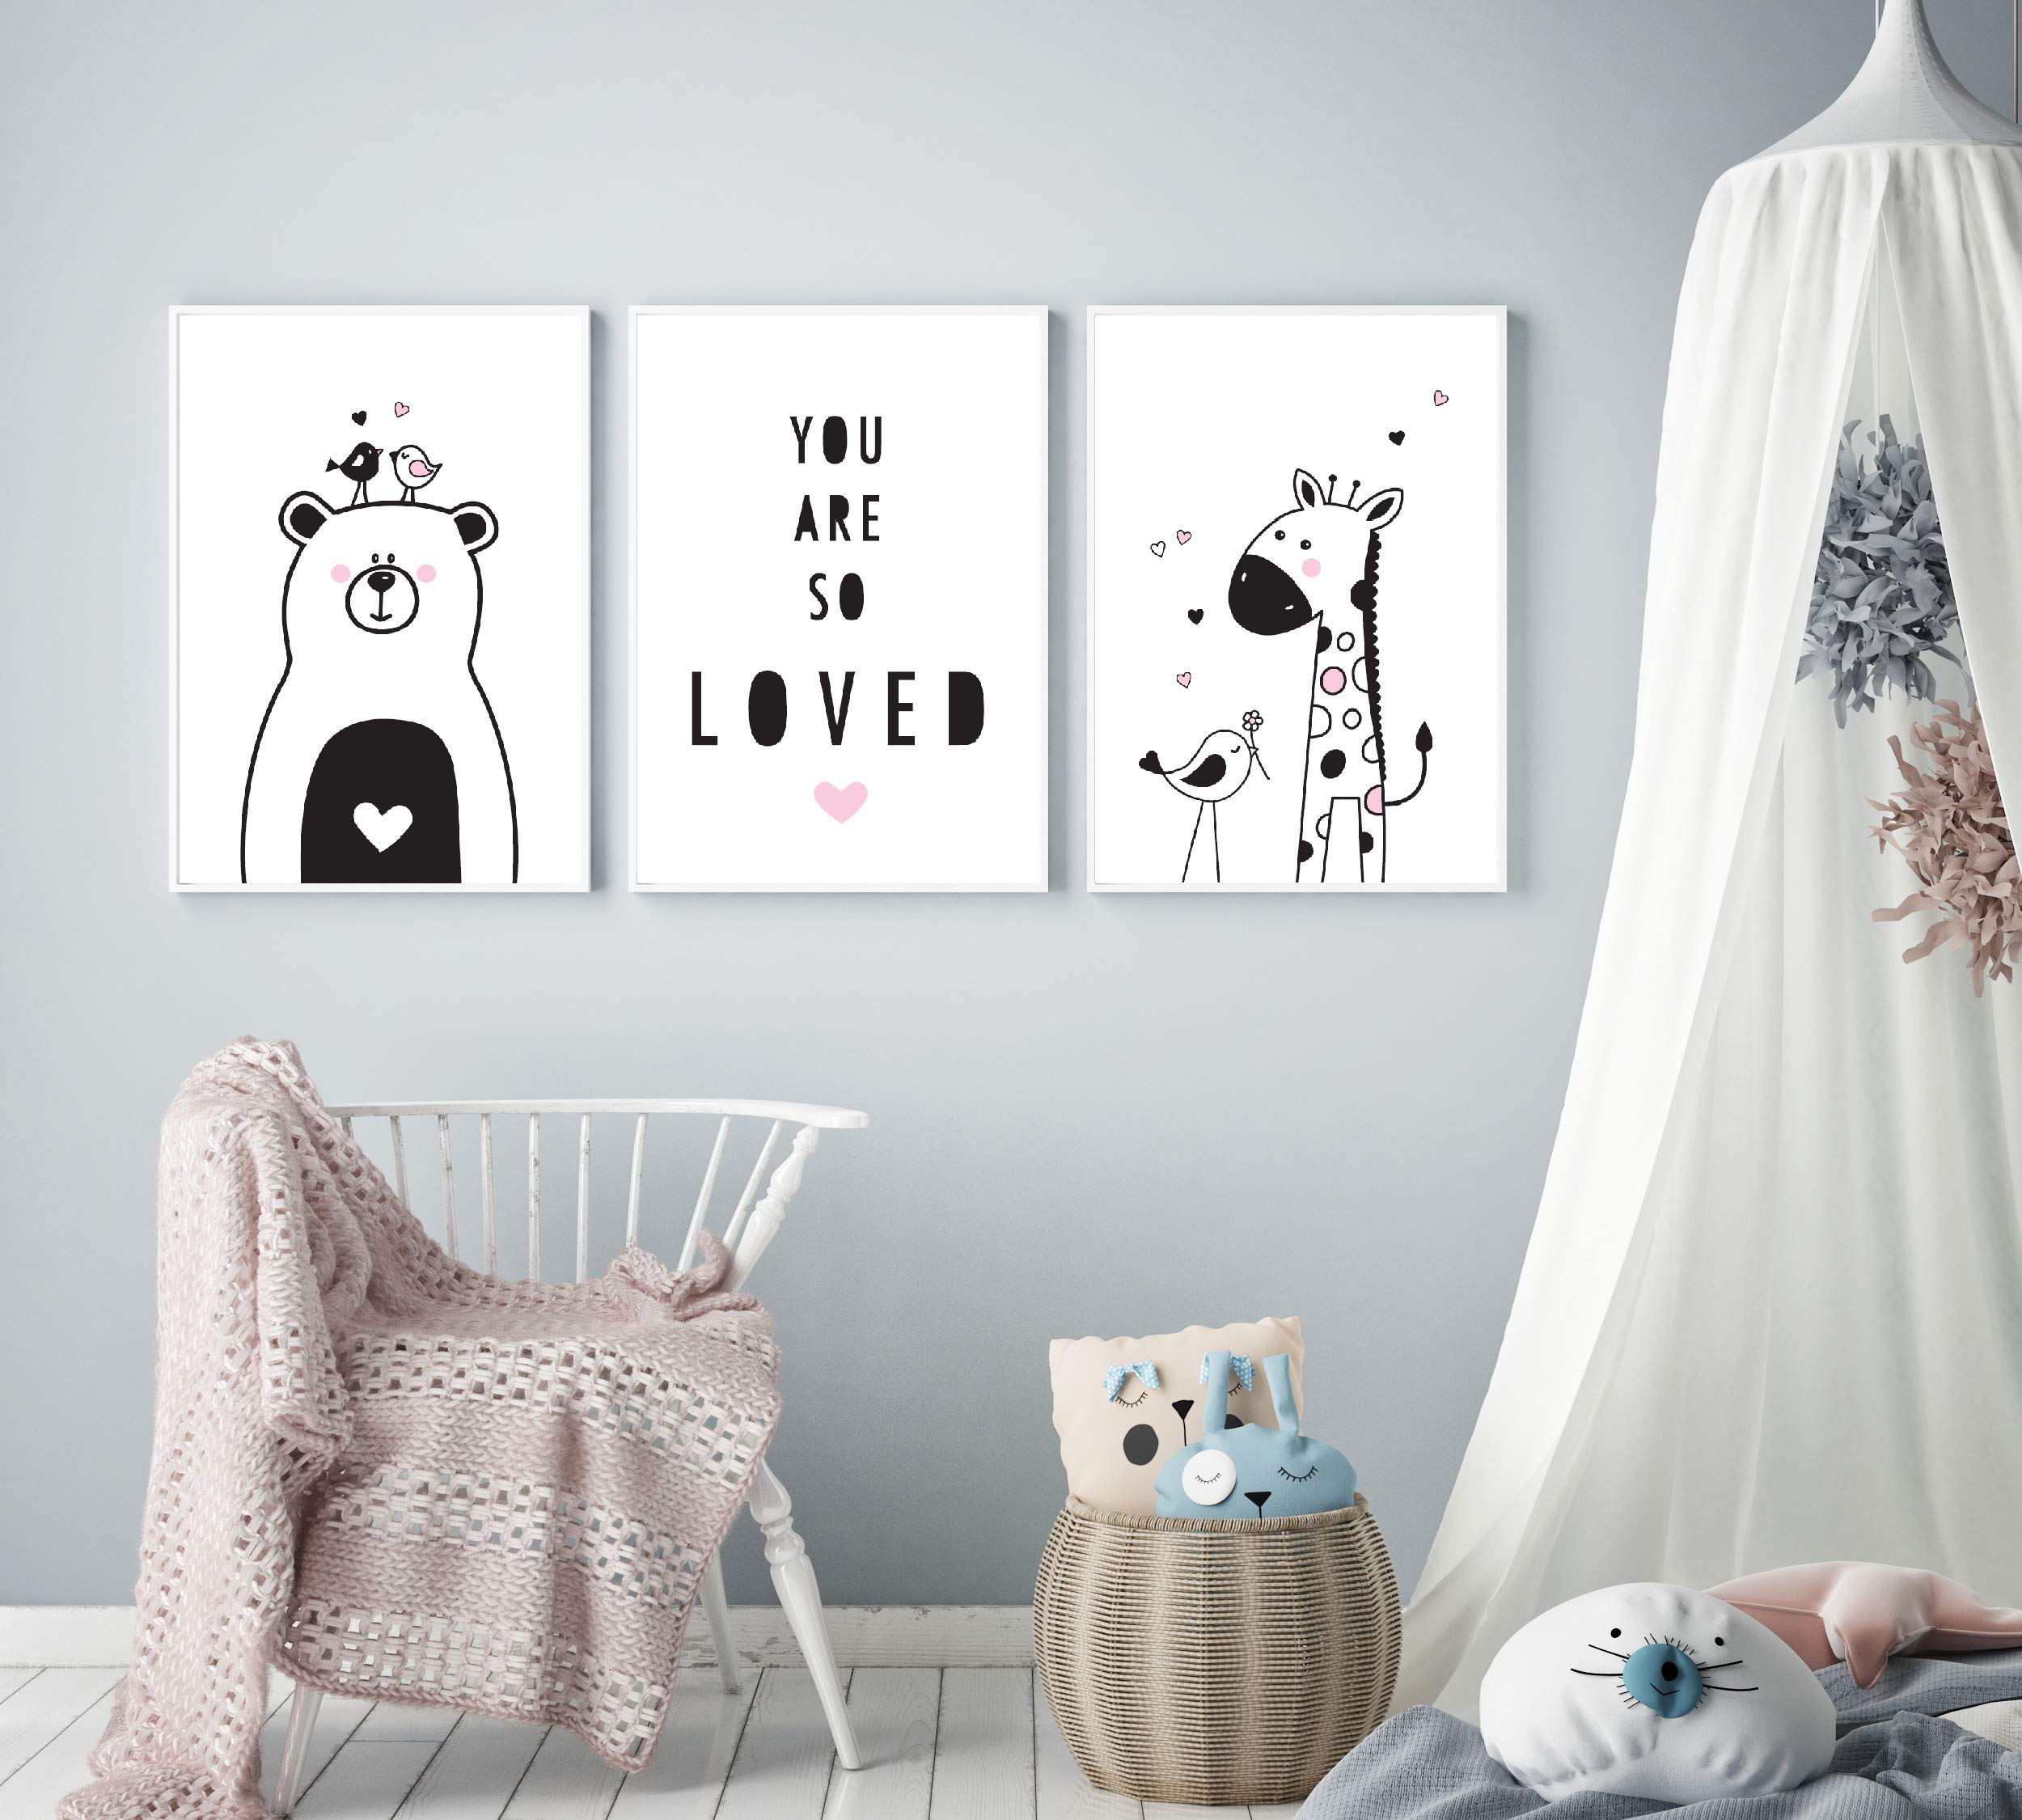 Modern Nursery Art by Mila Lou - Set of 3 - Framed - 10x12 - Cute Animals Kids Room Wall Decor (Pink Accents)